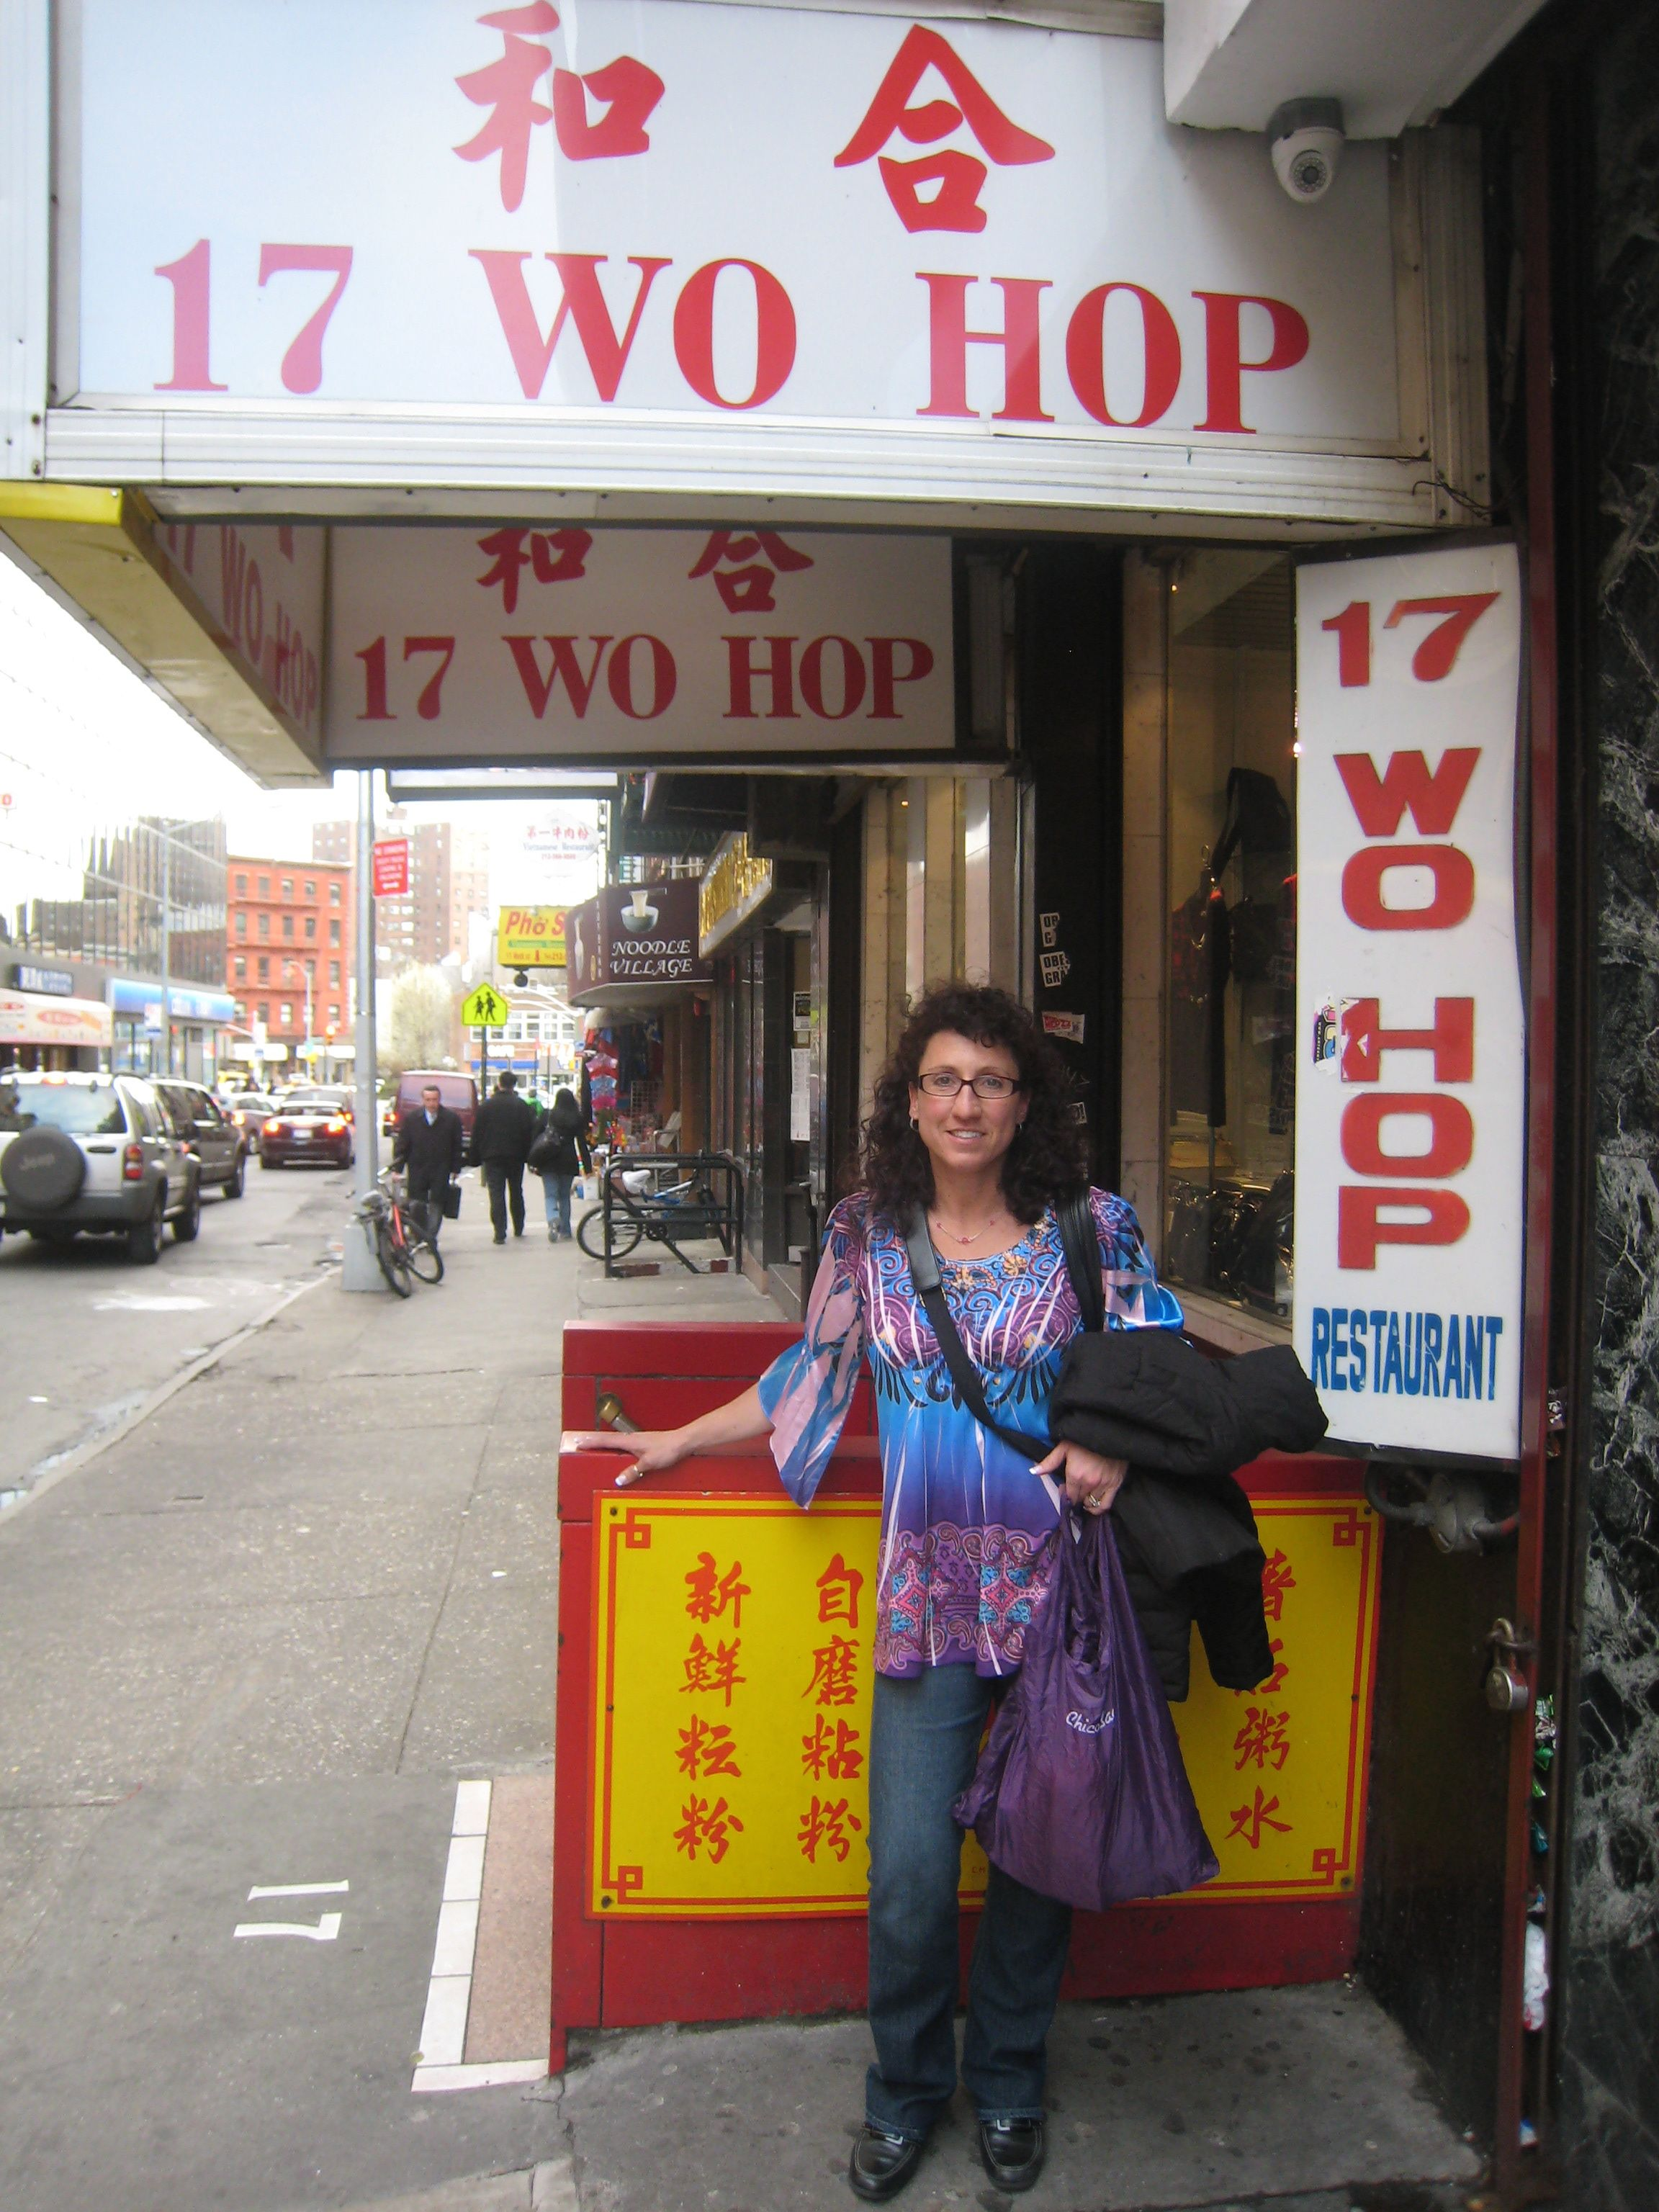 Wo Hop Open 24 Hrs 17 Mott Street Chinatown Nyc Restaurant New York Chinatown Chinese Restaurant